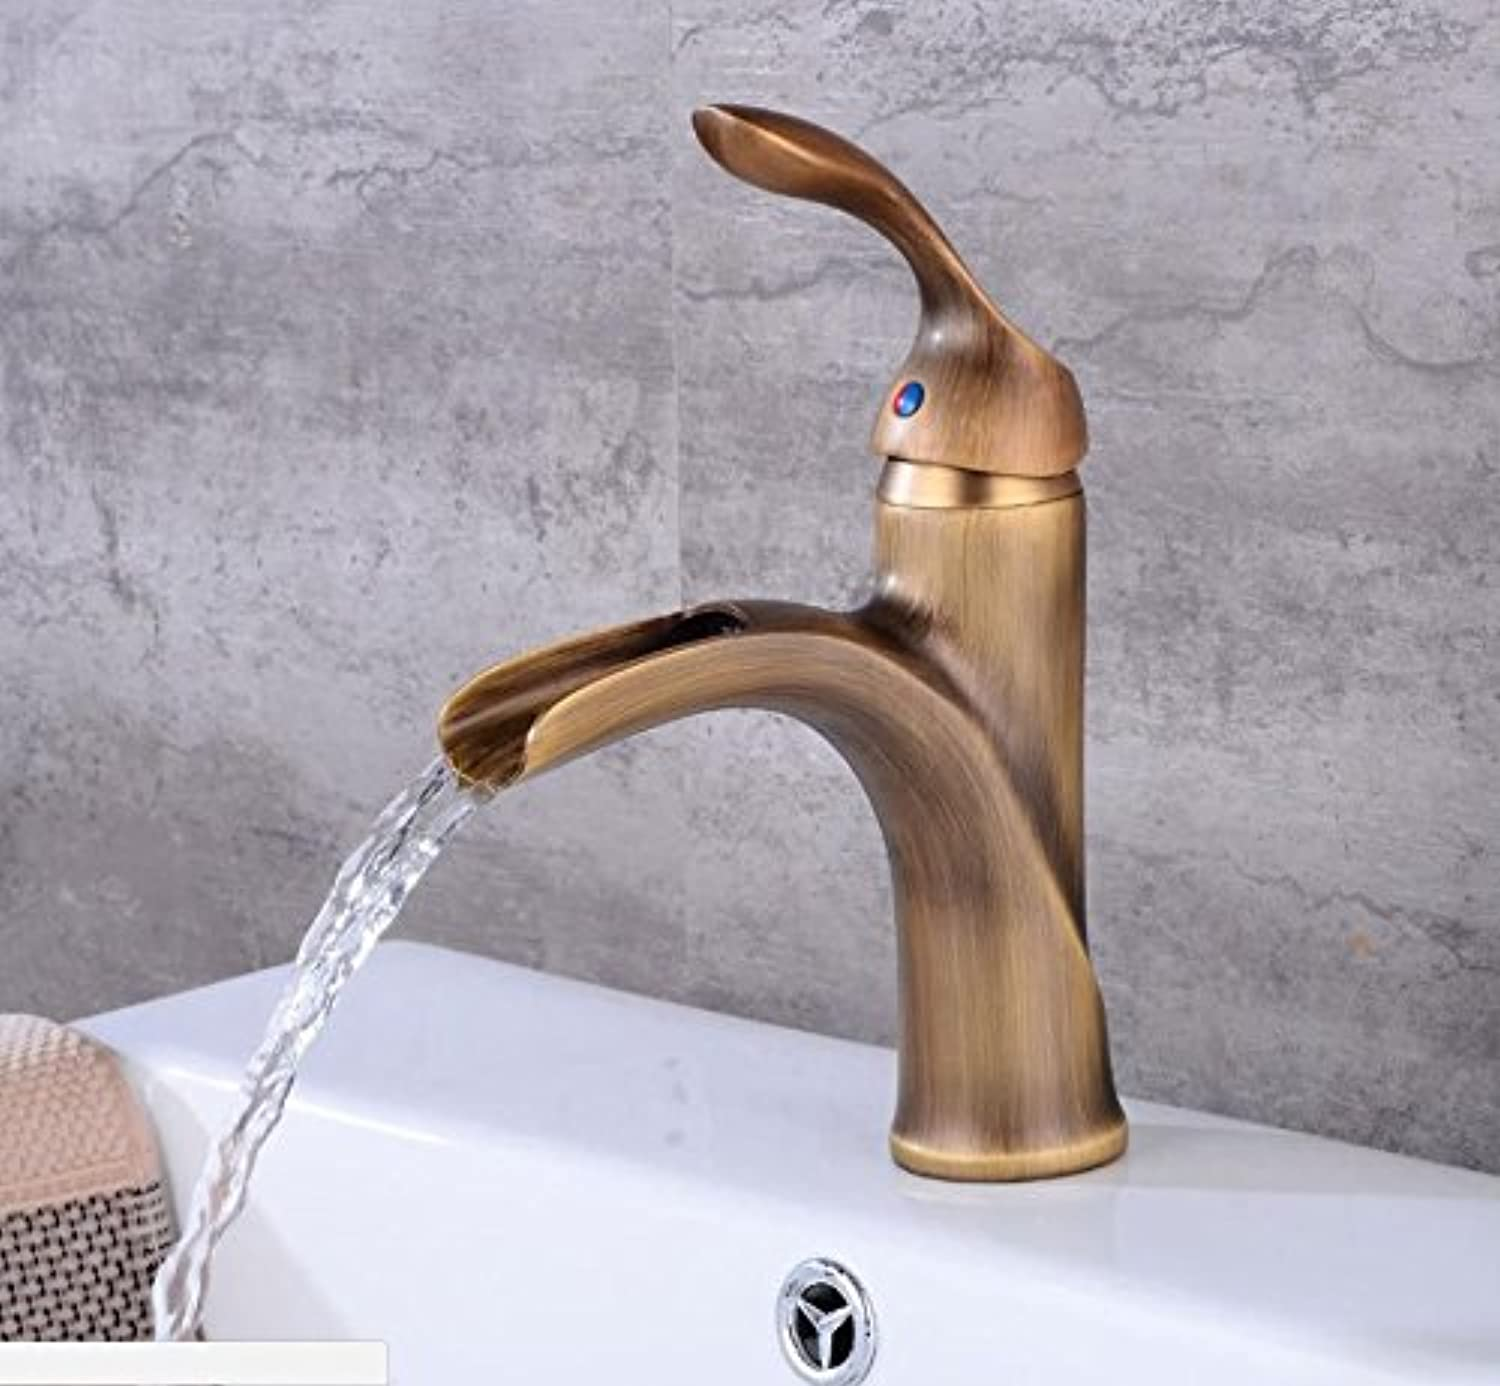 SADASD Contemporary Bathroom Full Copper Basin Faucet Waterfall Brass Basin Sink Mixer Tap Ceramic Spool Single Hole Single Handle Cold Water With G1 2 Hose